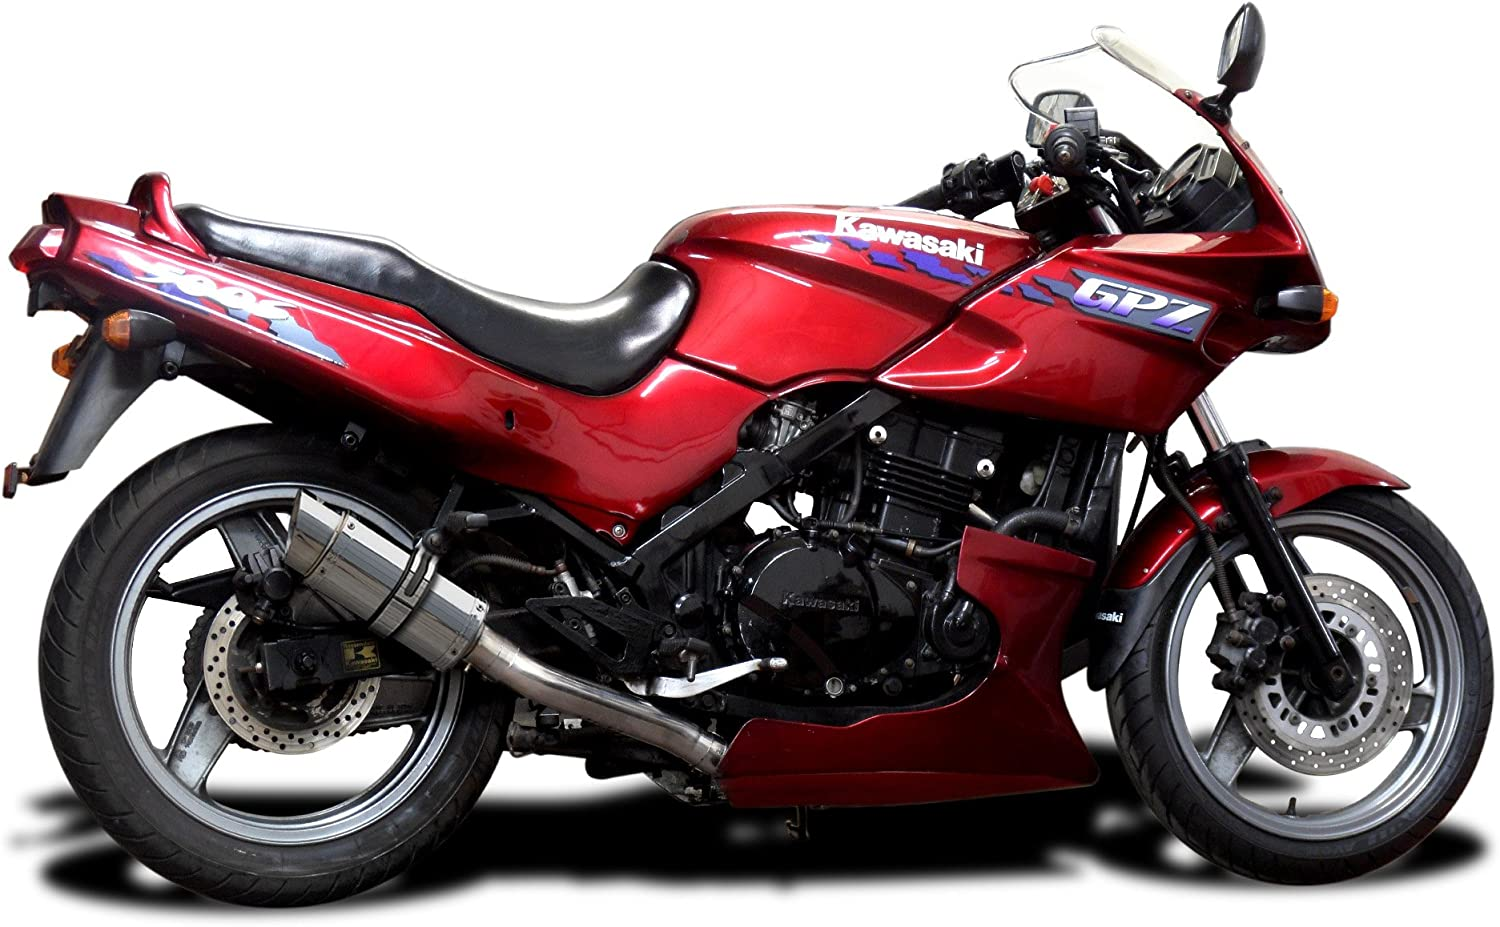 Delkevic Full 2-1 compatible with Kawasaki GPZ500S EX500 Mini 8 Stainless Round Muffler Exhaust 87-09